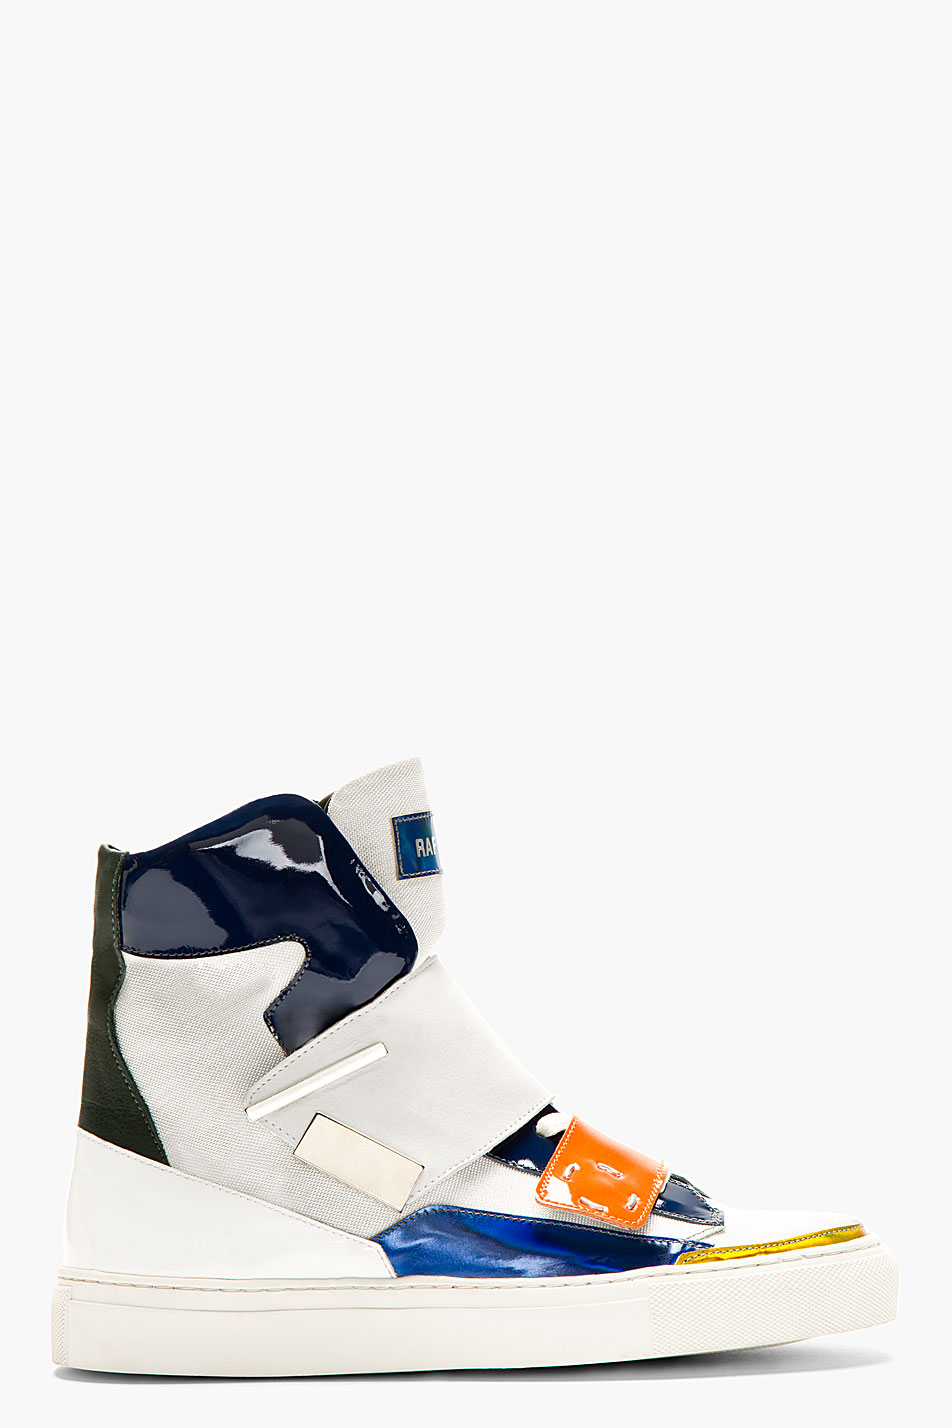 raf simons white patent leather and canvas high top sneakers